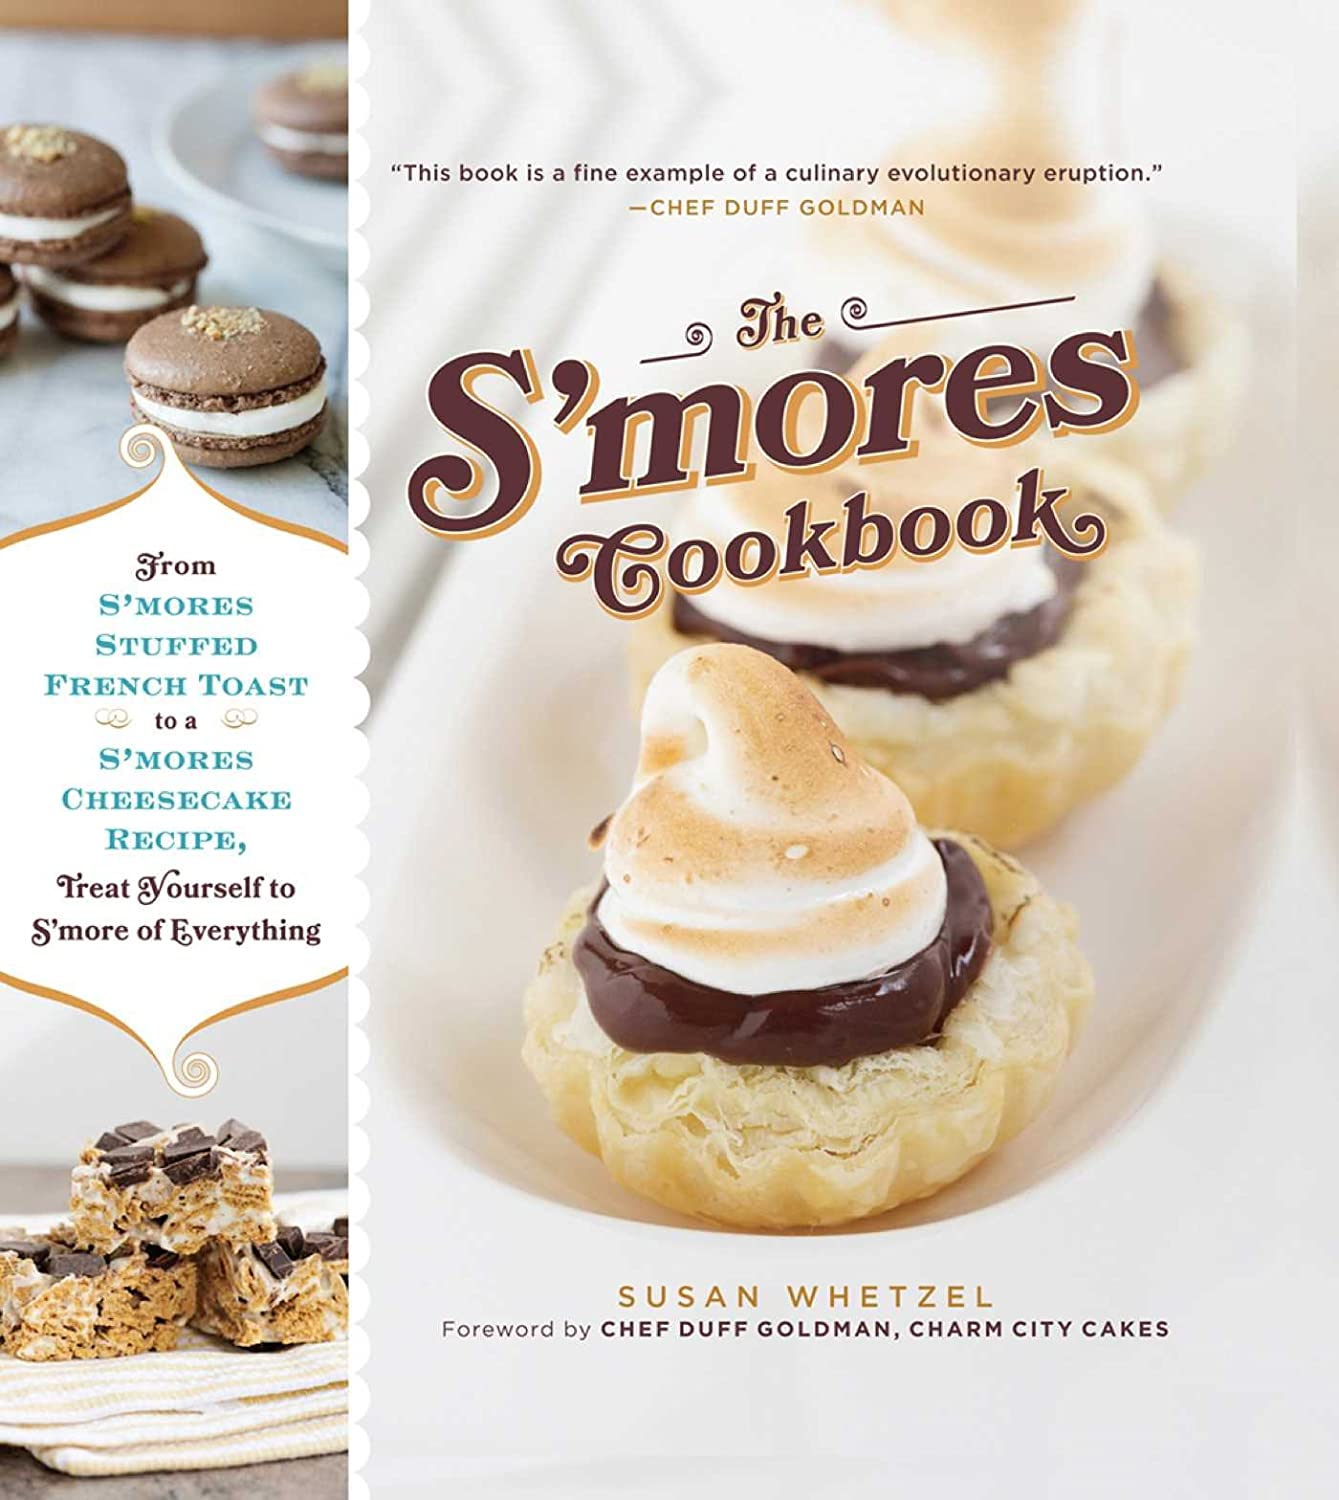 The Smores Cookbook: From Smores Stuffed French Toast to a Smores Cheesecake Recipe, Treat Yourself to Smore of Everything (English Edition) eBook: Whetzel, Susan, Goldman, Duff, Goldman, Duff: Amazon.es: Tienda Kindle